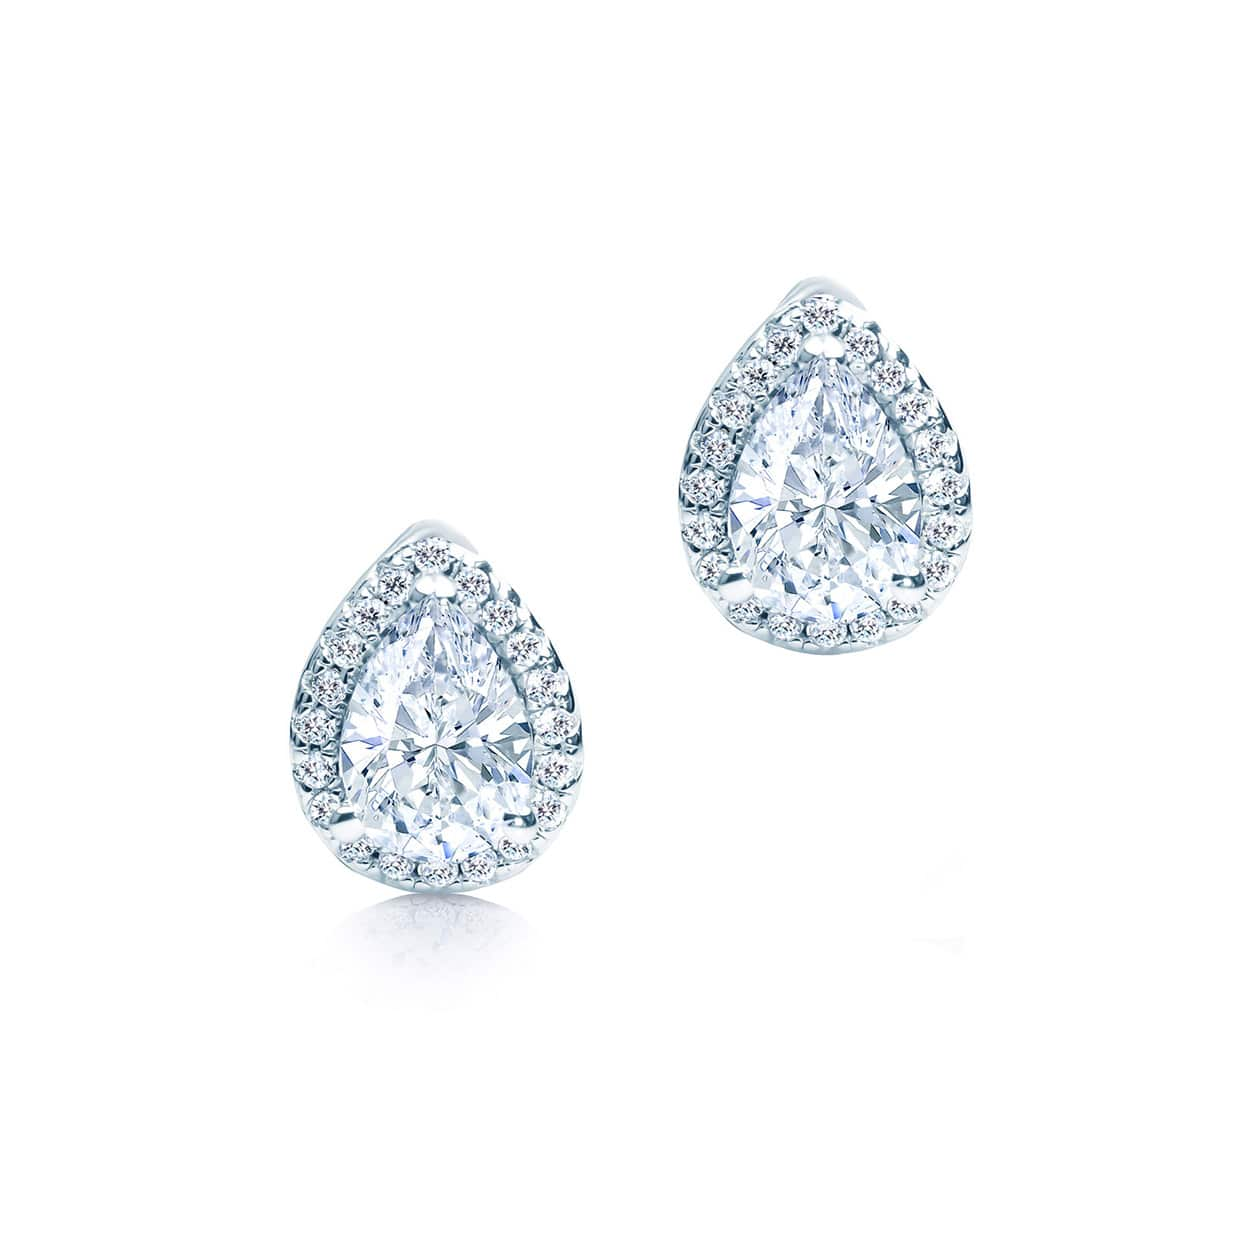 Oxford Silver Halo Pear Cut Earrings - Abelstedt